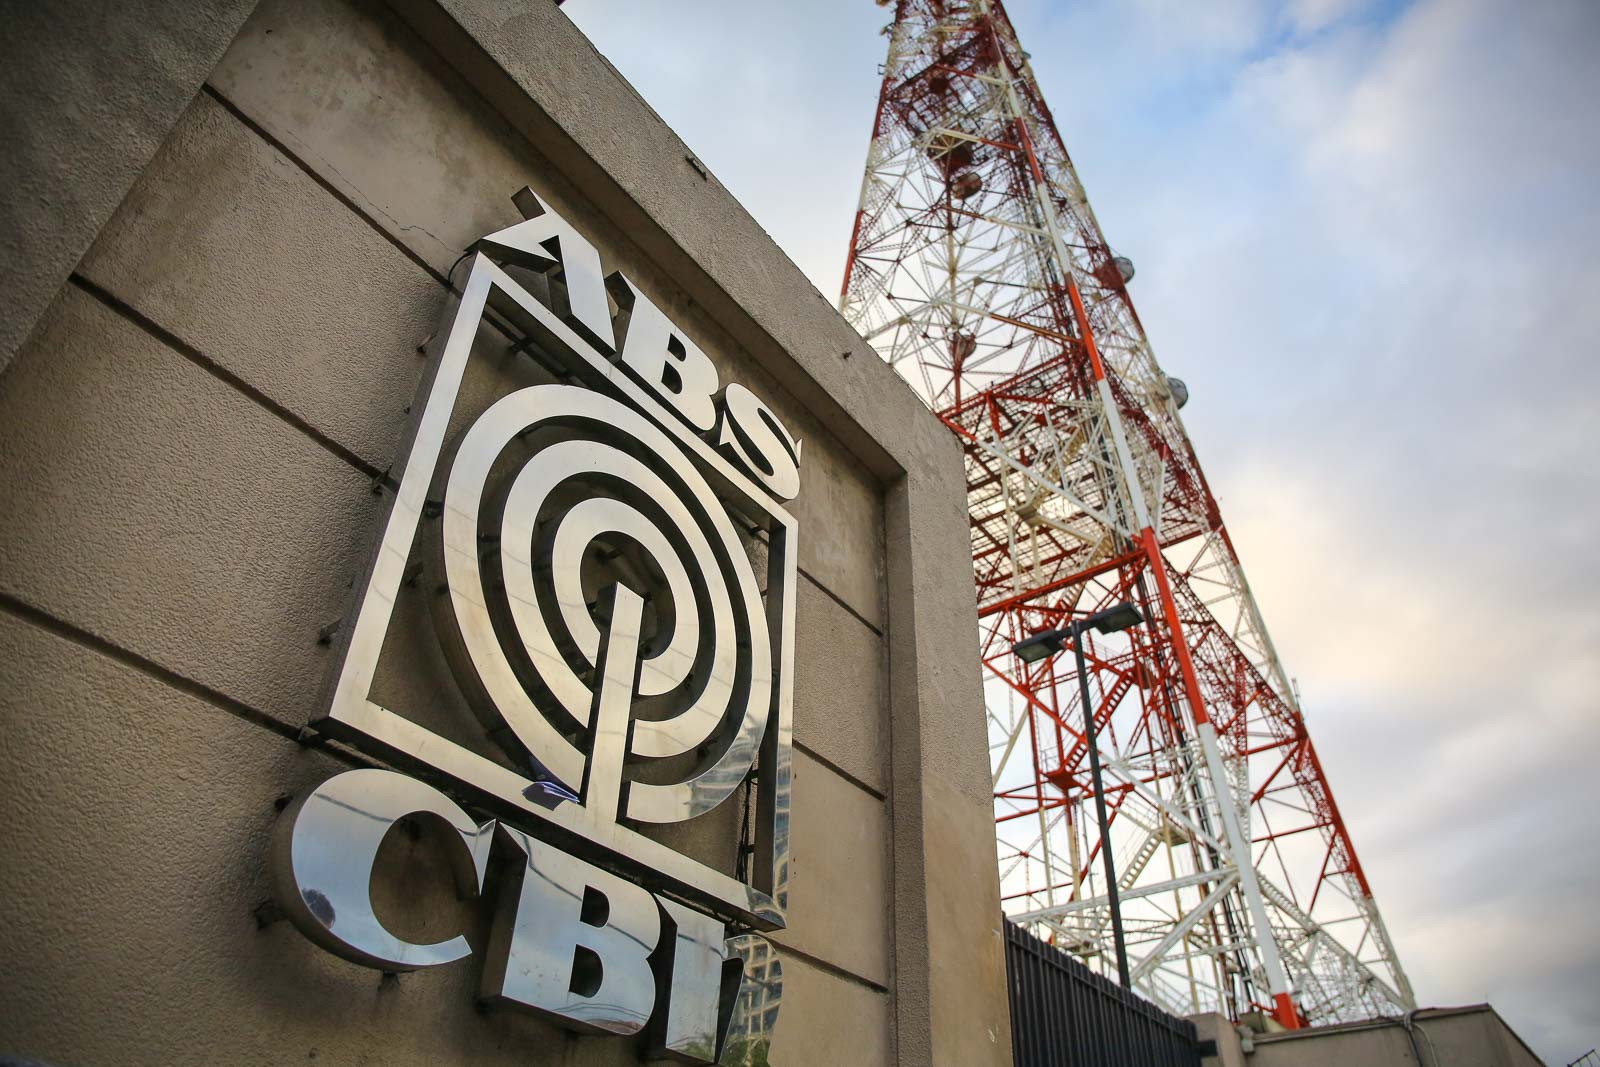 ABS-CBN CEO breaks silence on network franchise issue